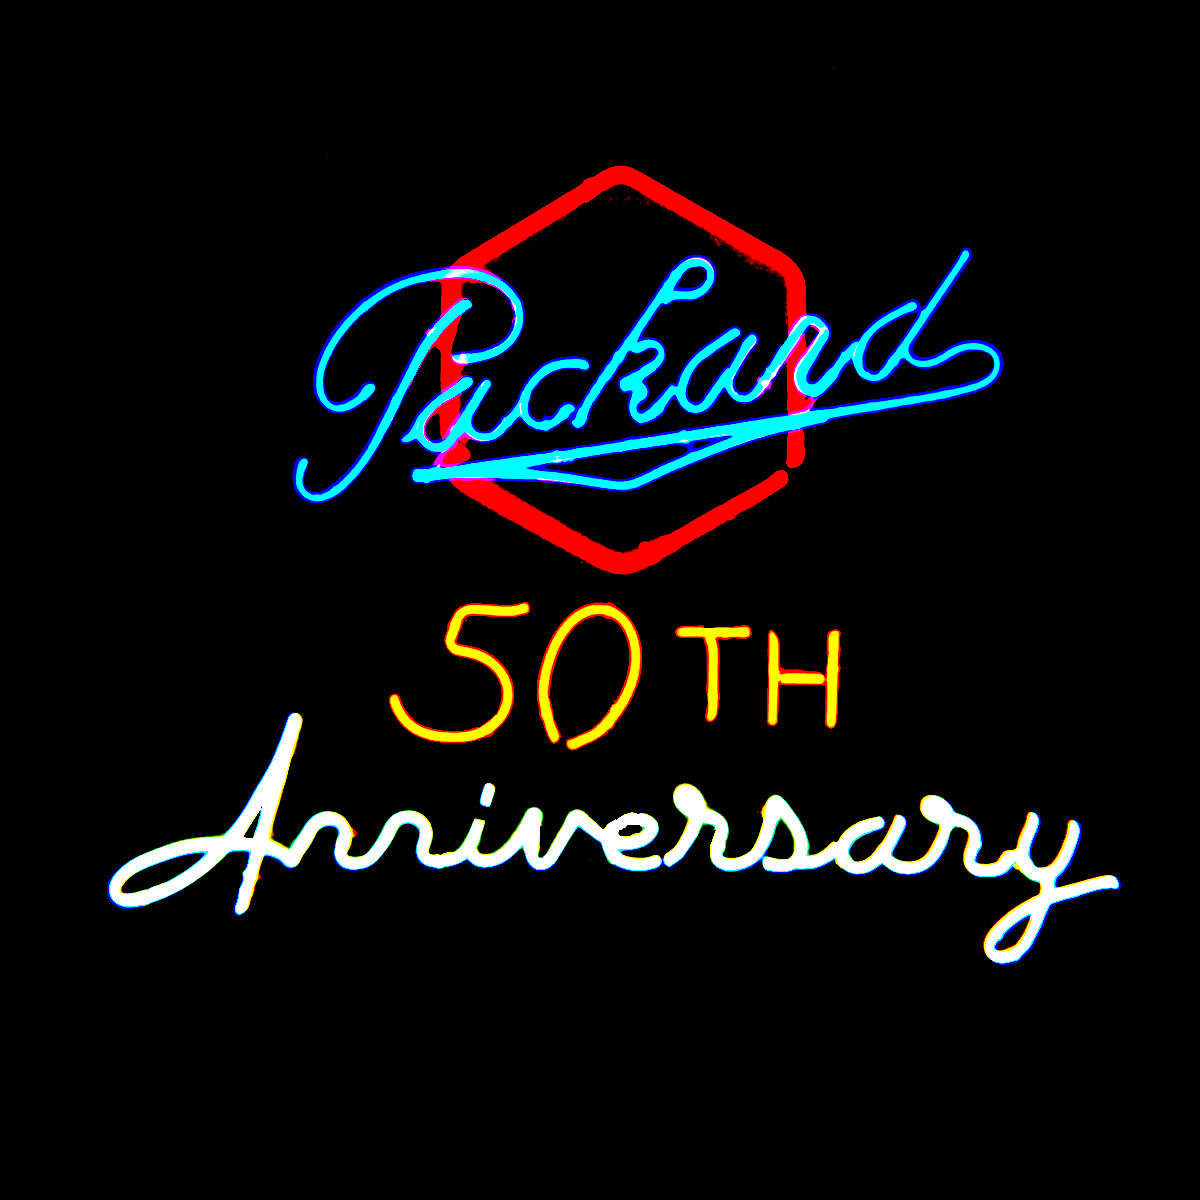 resized Packard 50th Anniversary Neon Sign.jpg